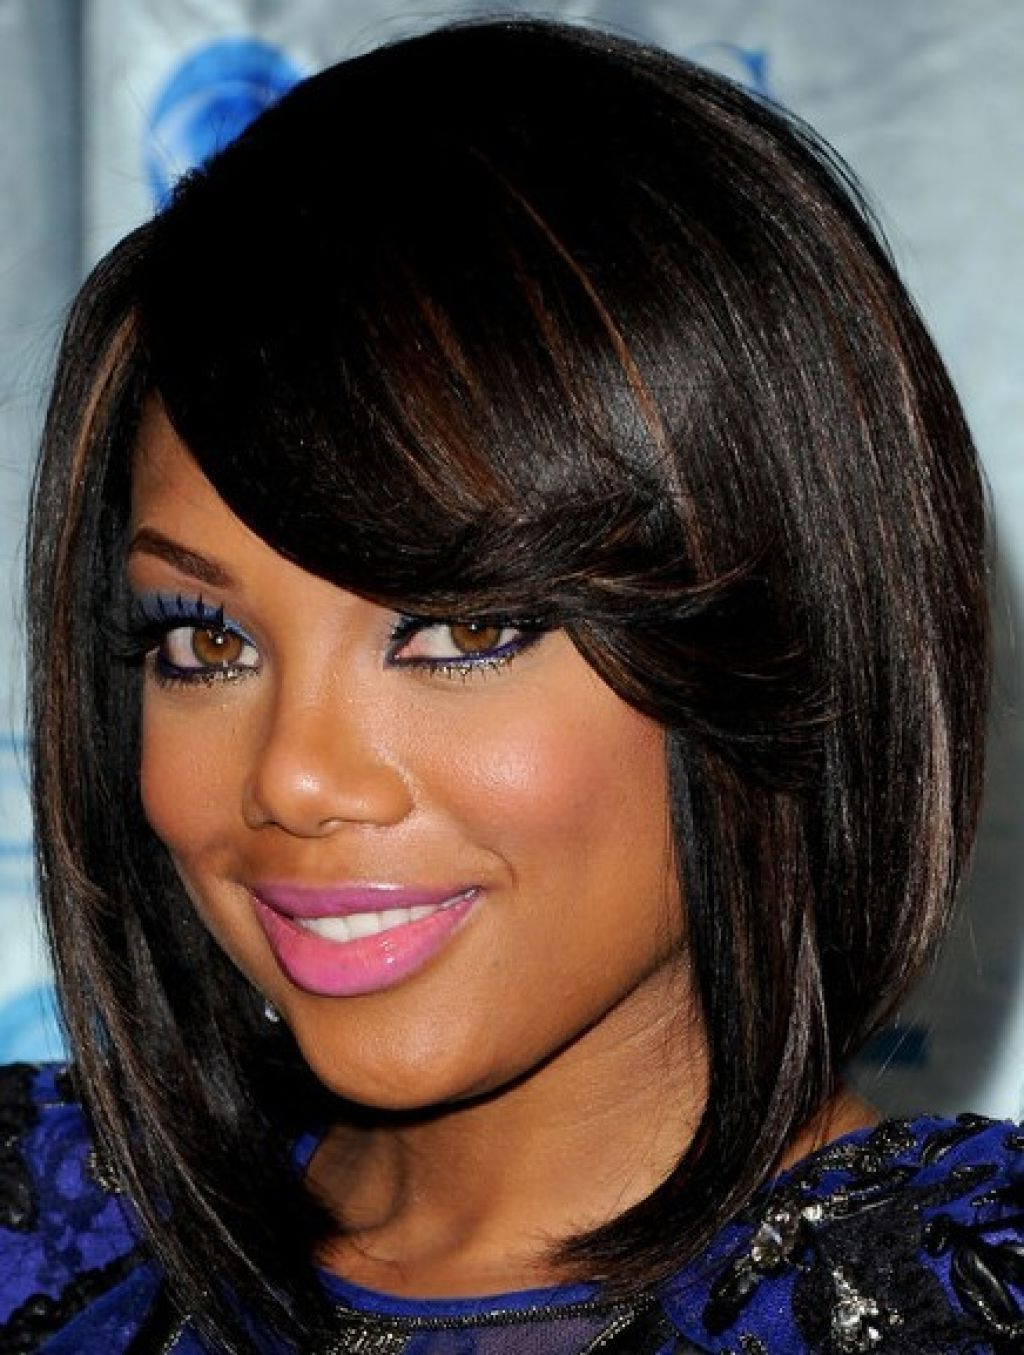 Most Current Medium Haircuts For Black Women With Round Faces Intended For 27 Short Hairstyles And Haircuts For Black Women Of Class (View 2 of 20)